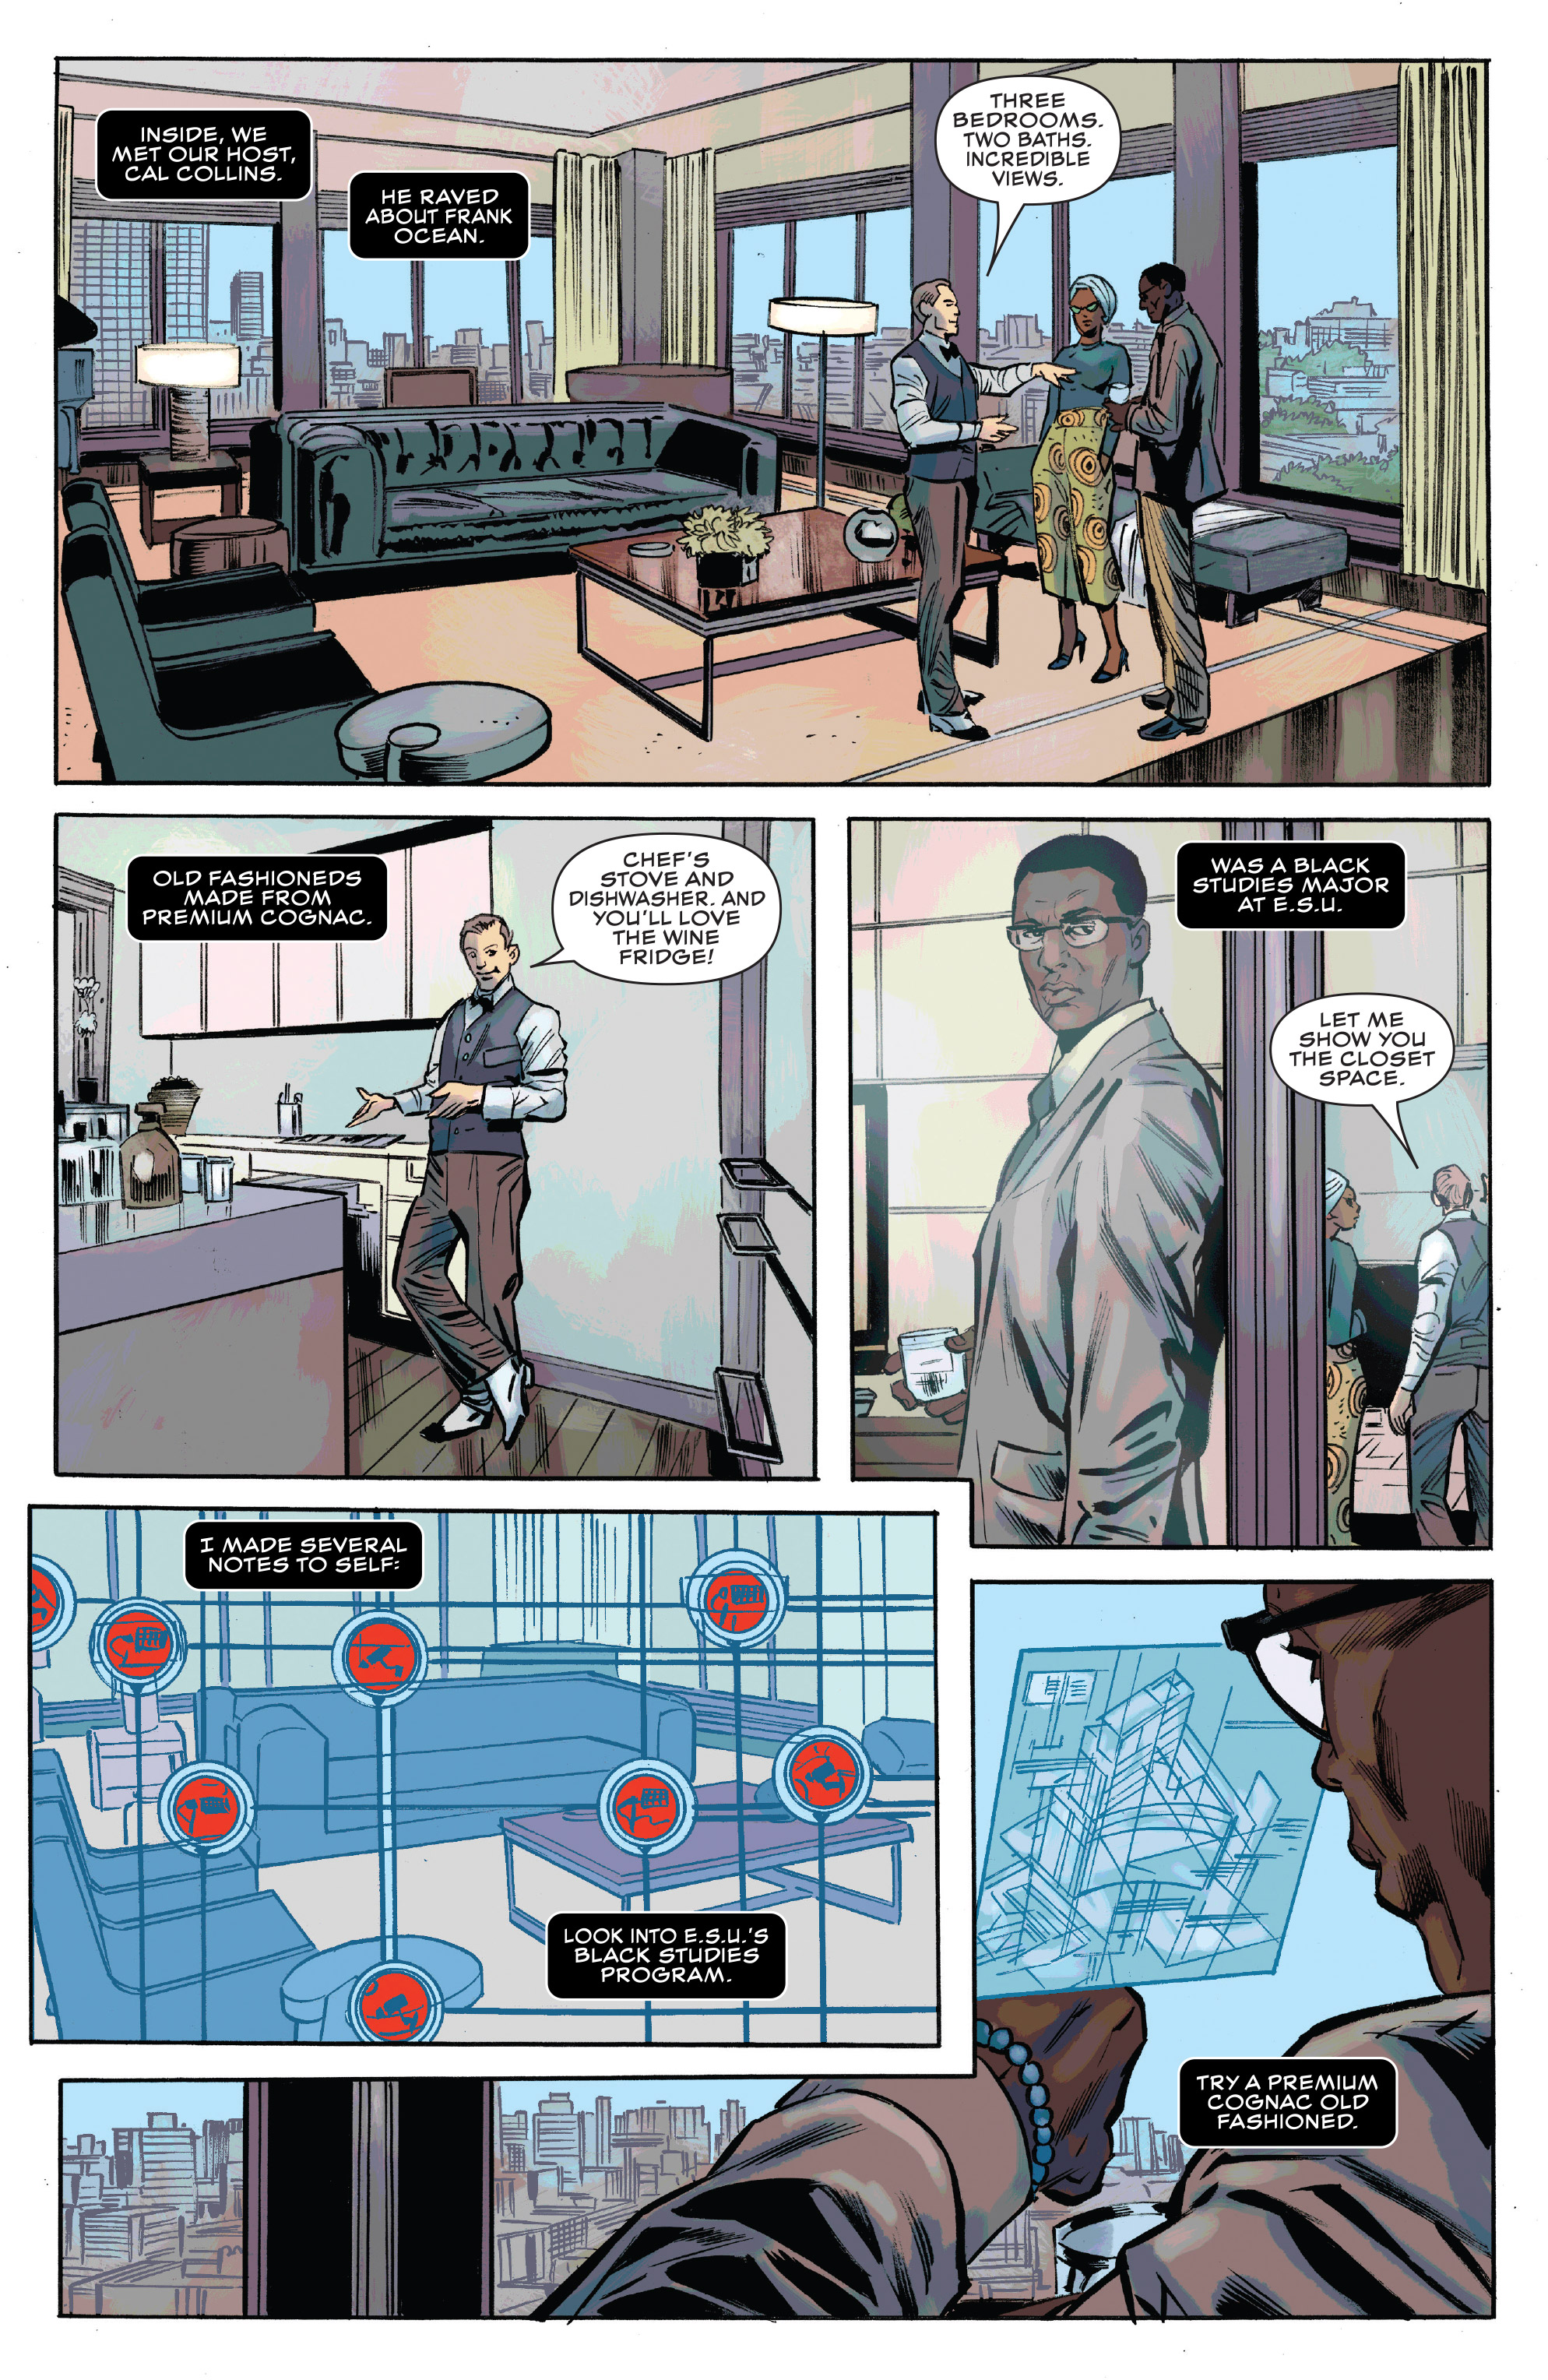 Read online Black Panther and the Crew comic -  Issue #3 - 14